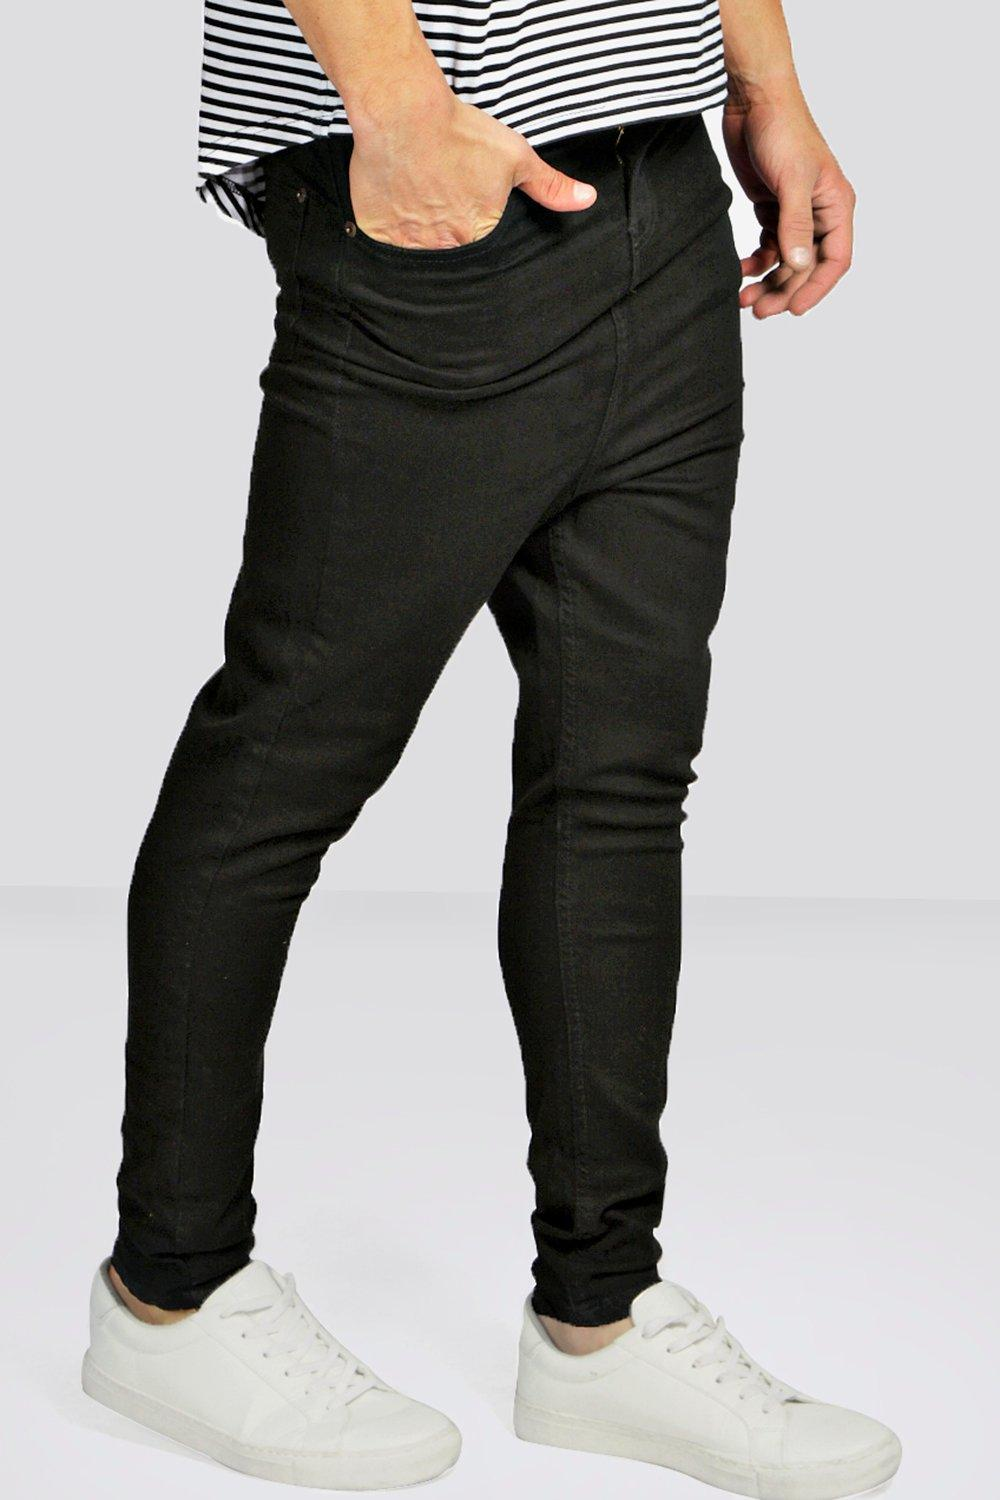 Popular drop crotch pants men of Good Quality and at Affordable Prices You can Buy on AliExpress. We believe in helping you find the product that is right for you.